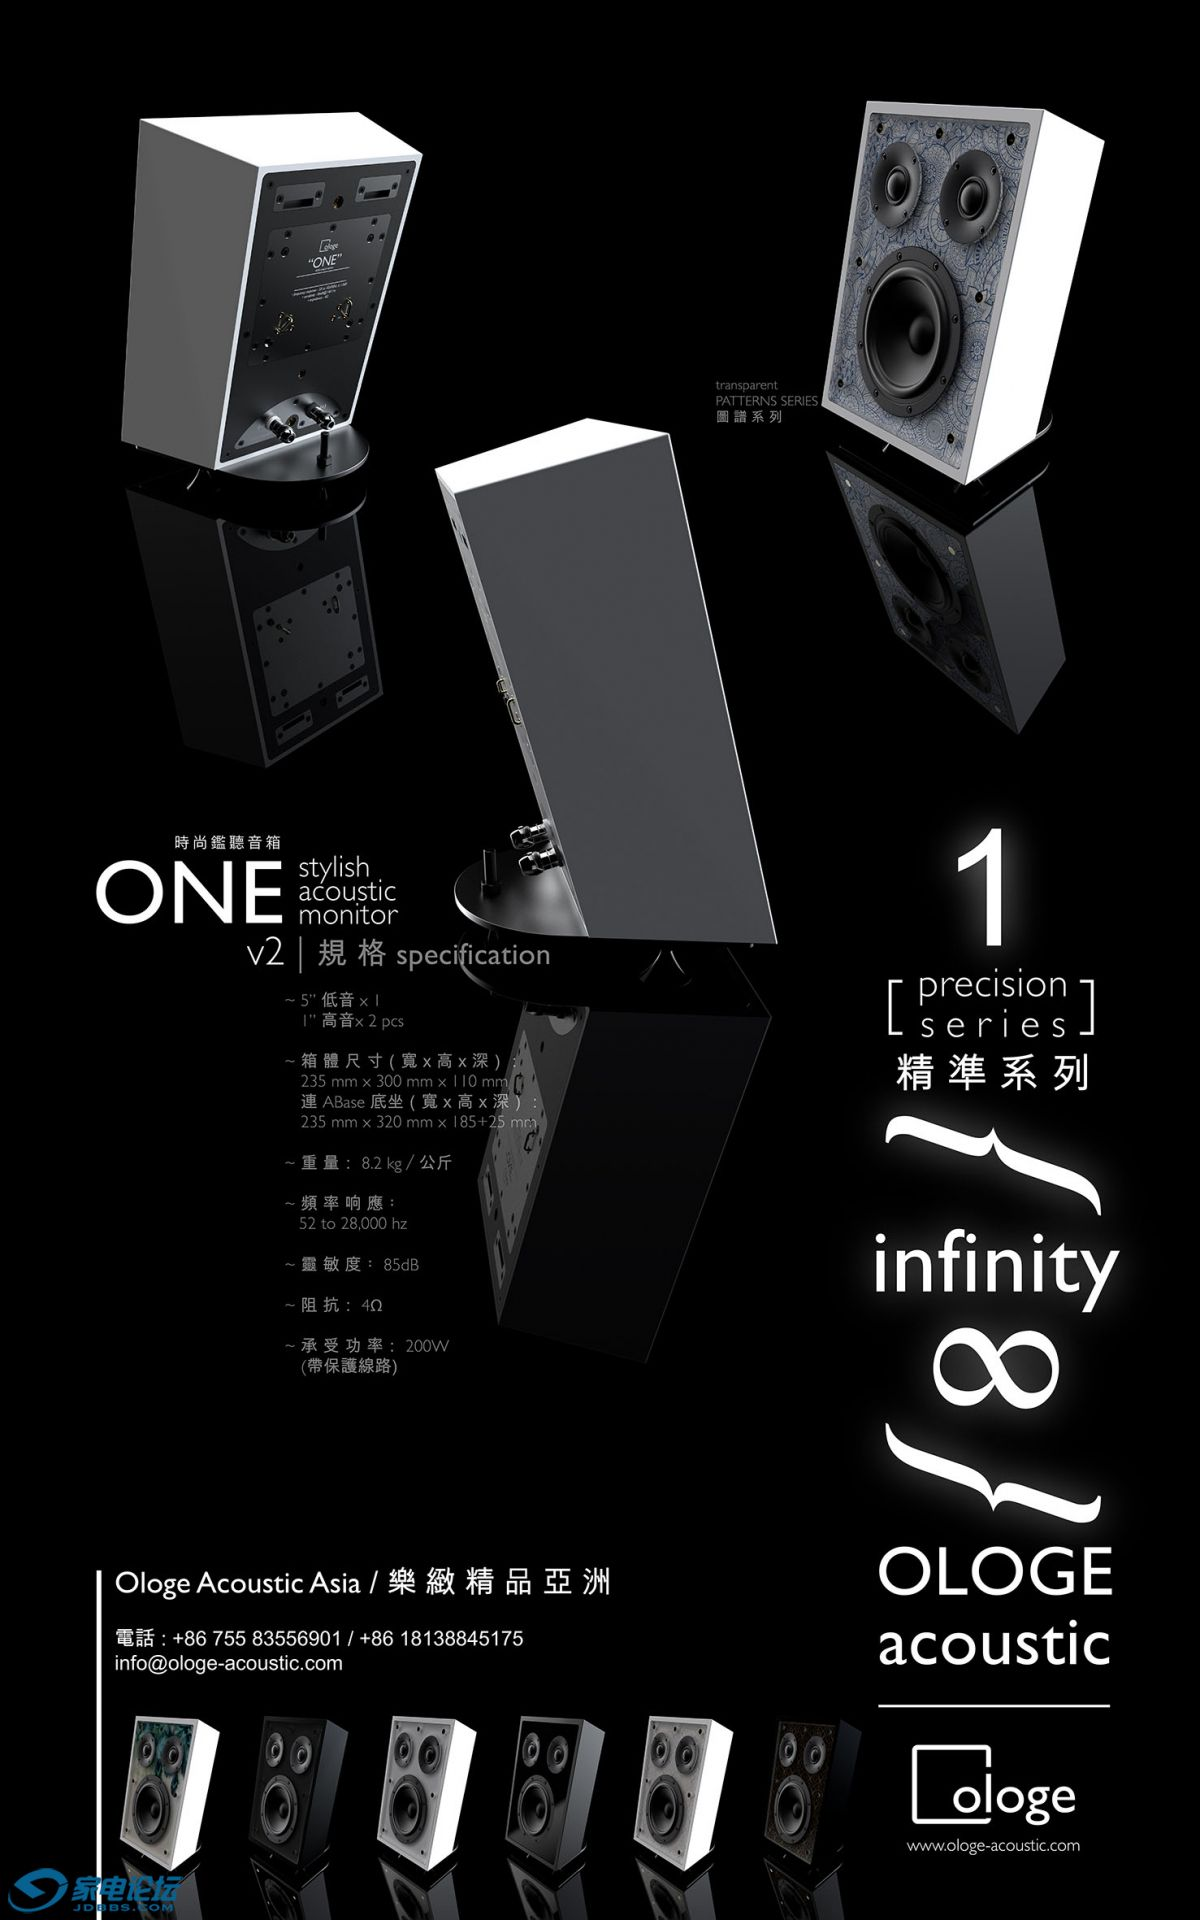 infinity layout - chinese-10.jpg